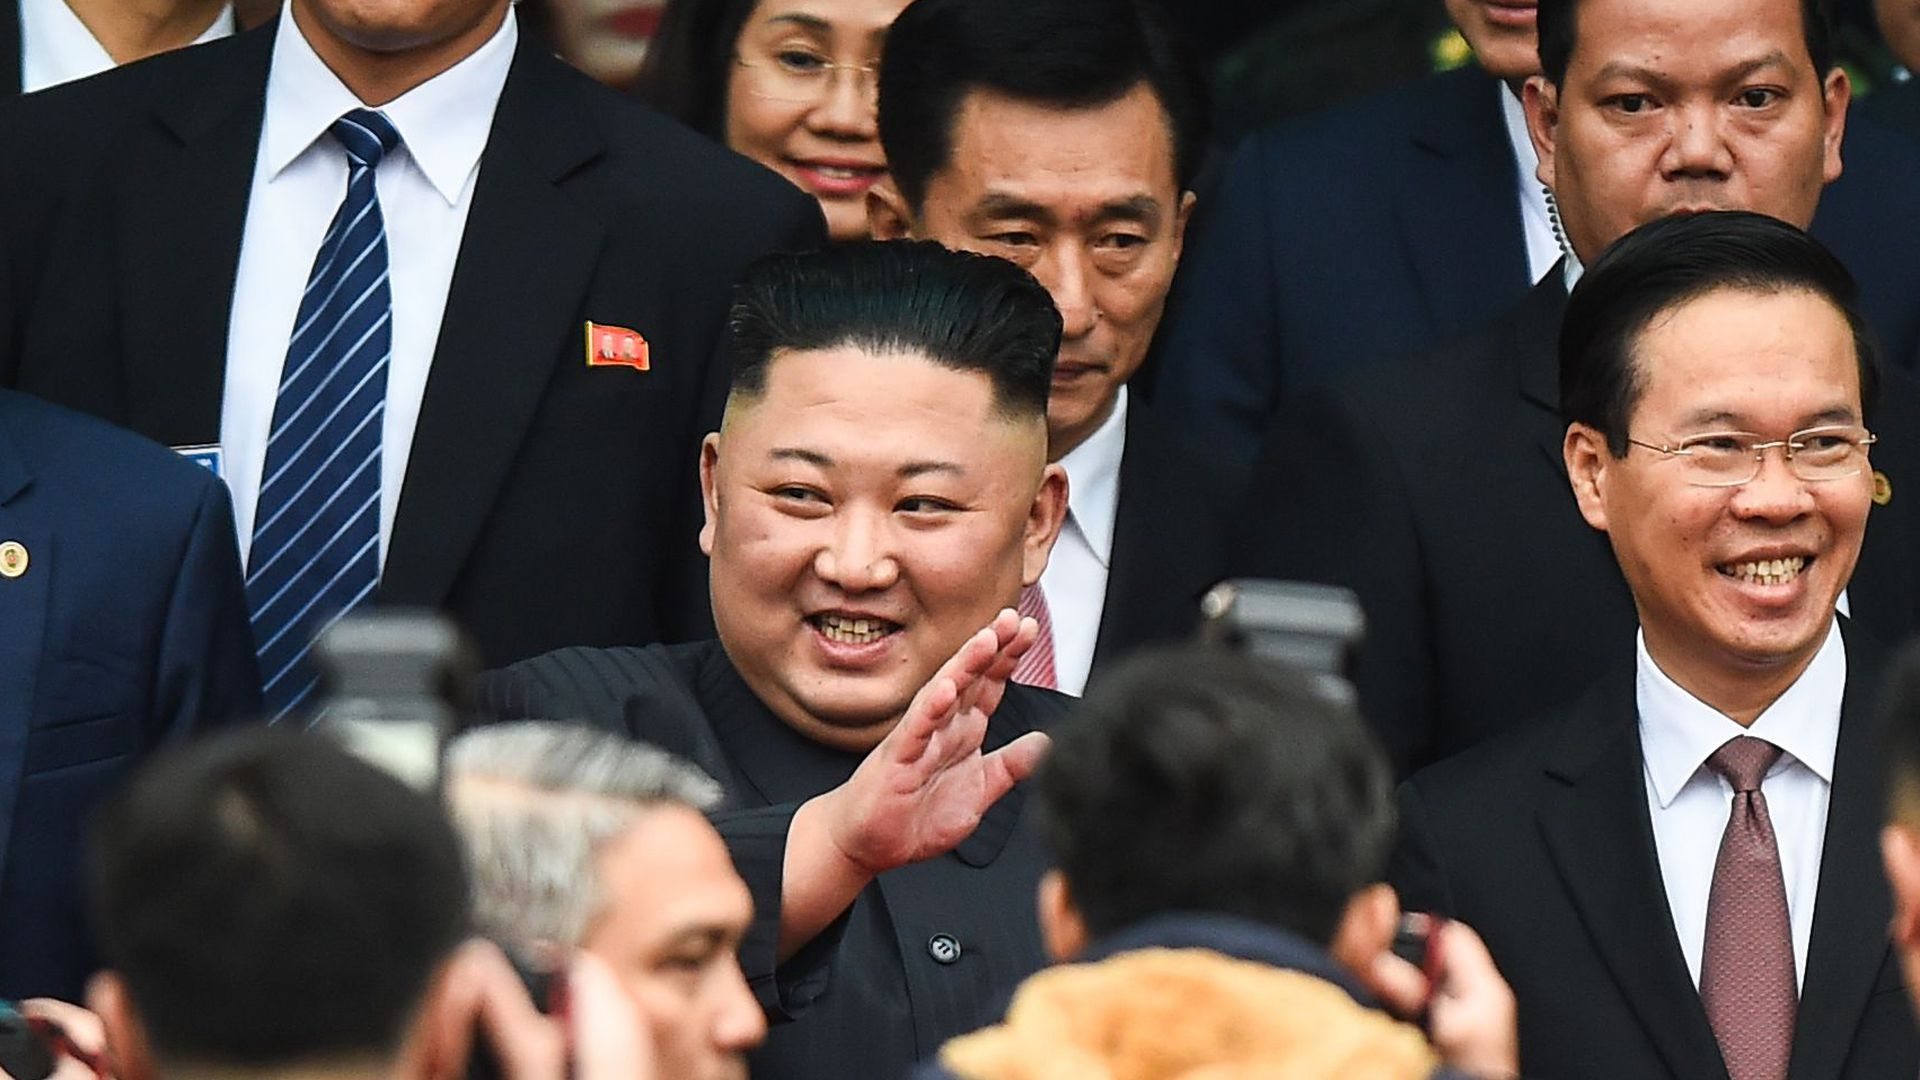 North Korea leader Kim Jong un arrives in Vietnam ahead of his summit with President Trump this week.